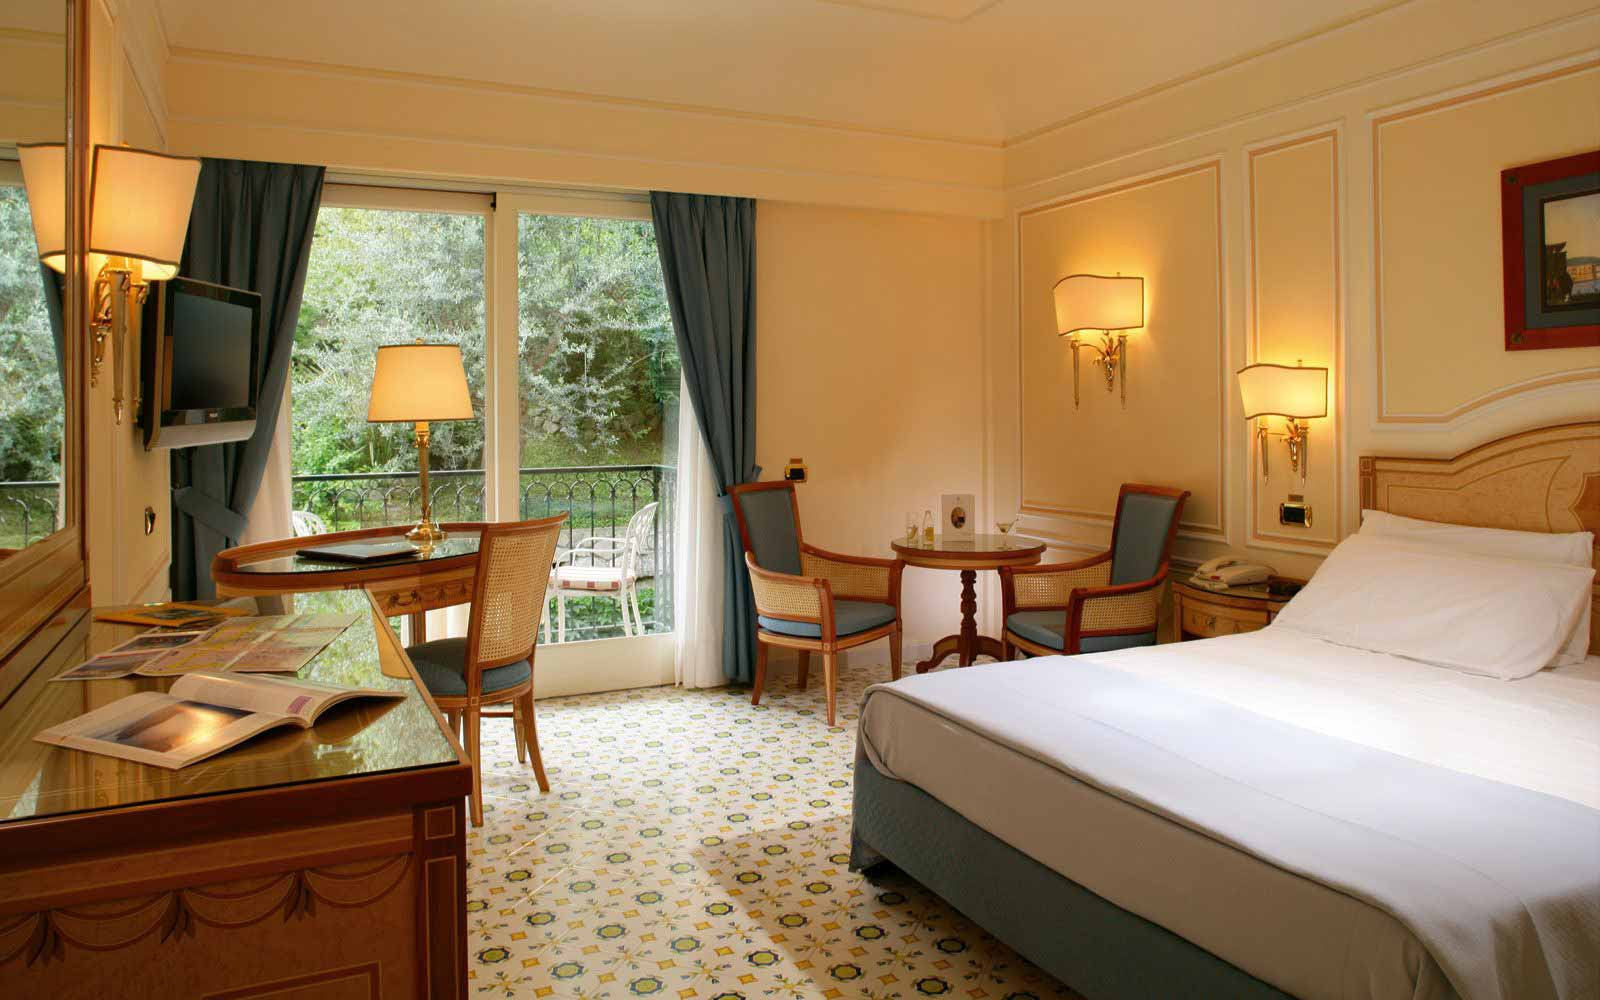 Double Room with balcony at Grand Hotel Capodimonte